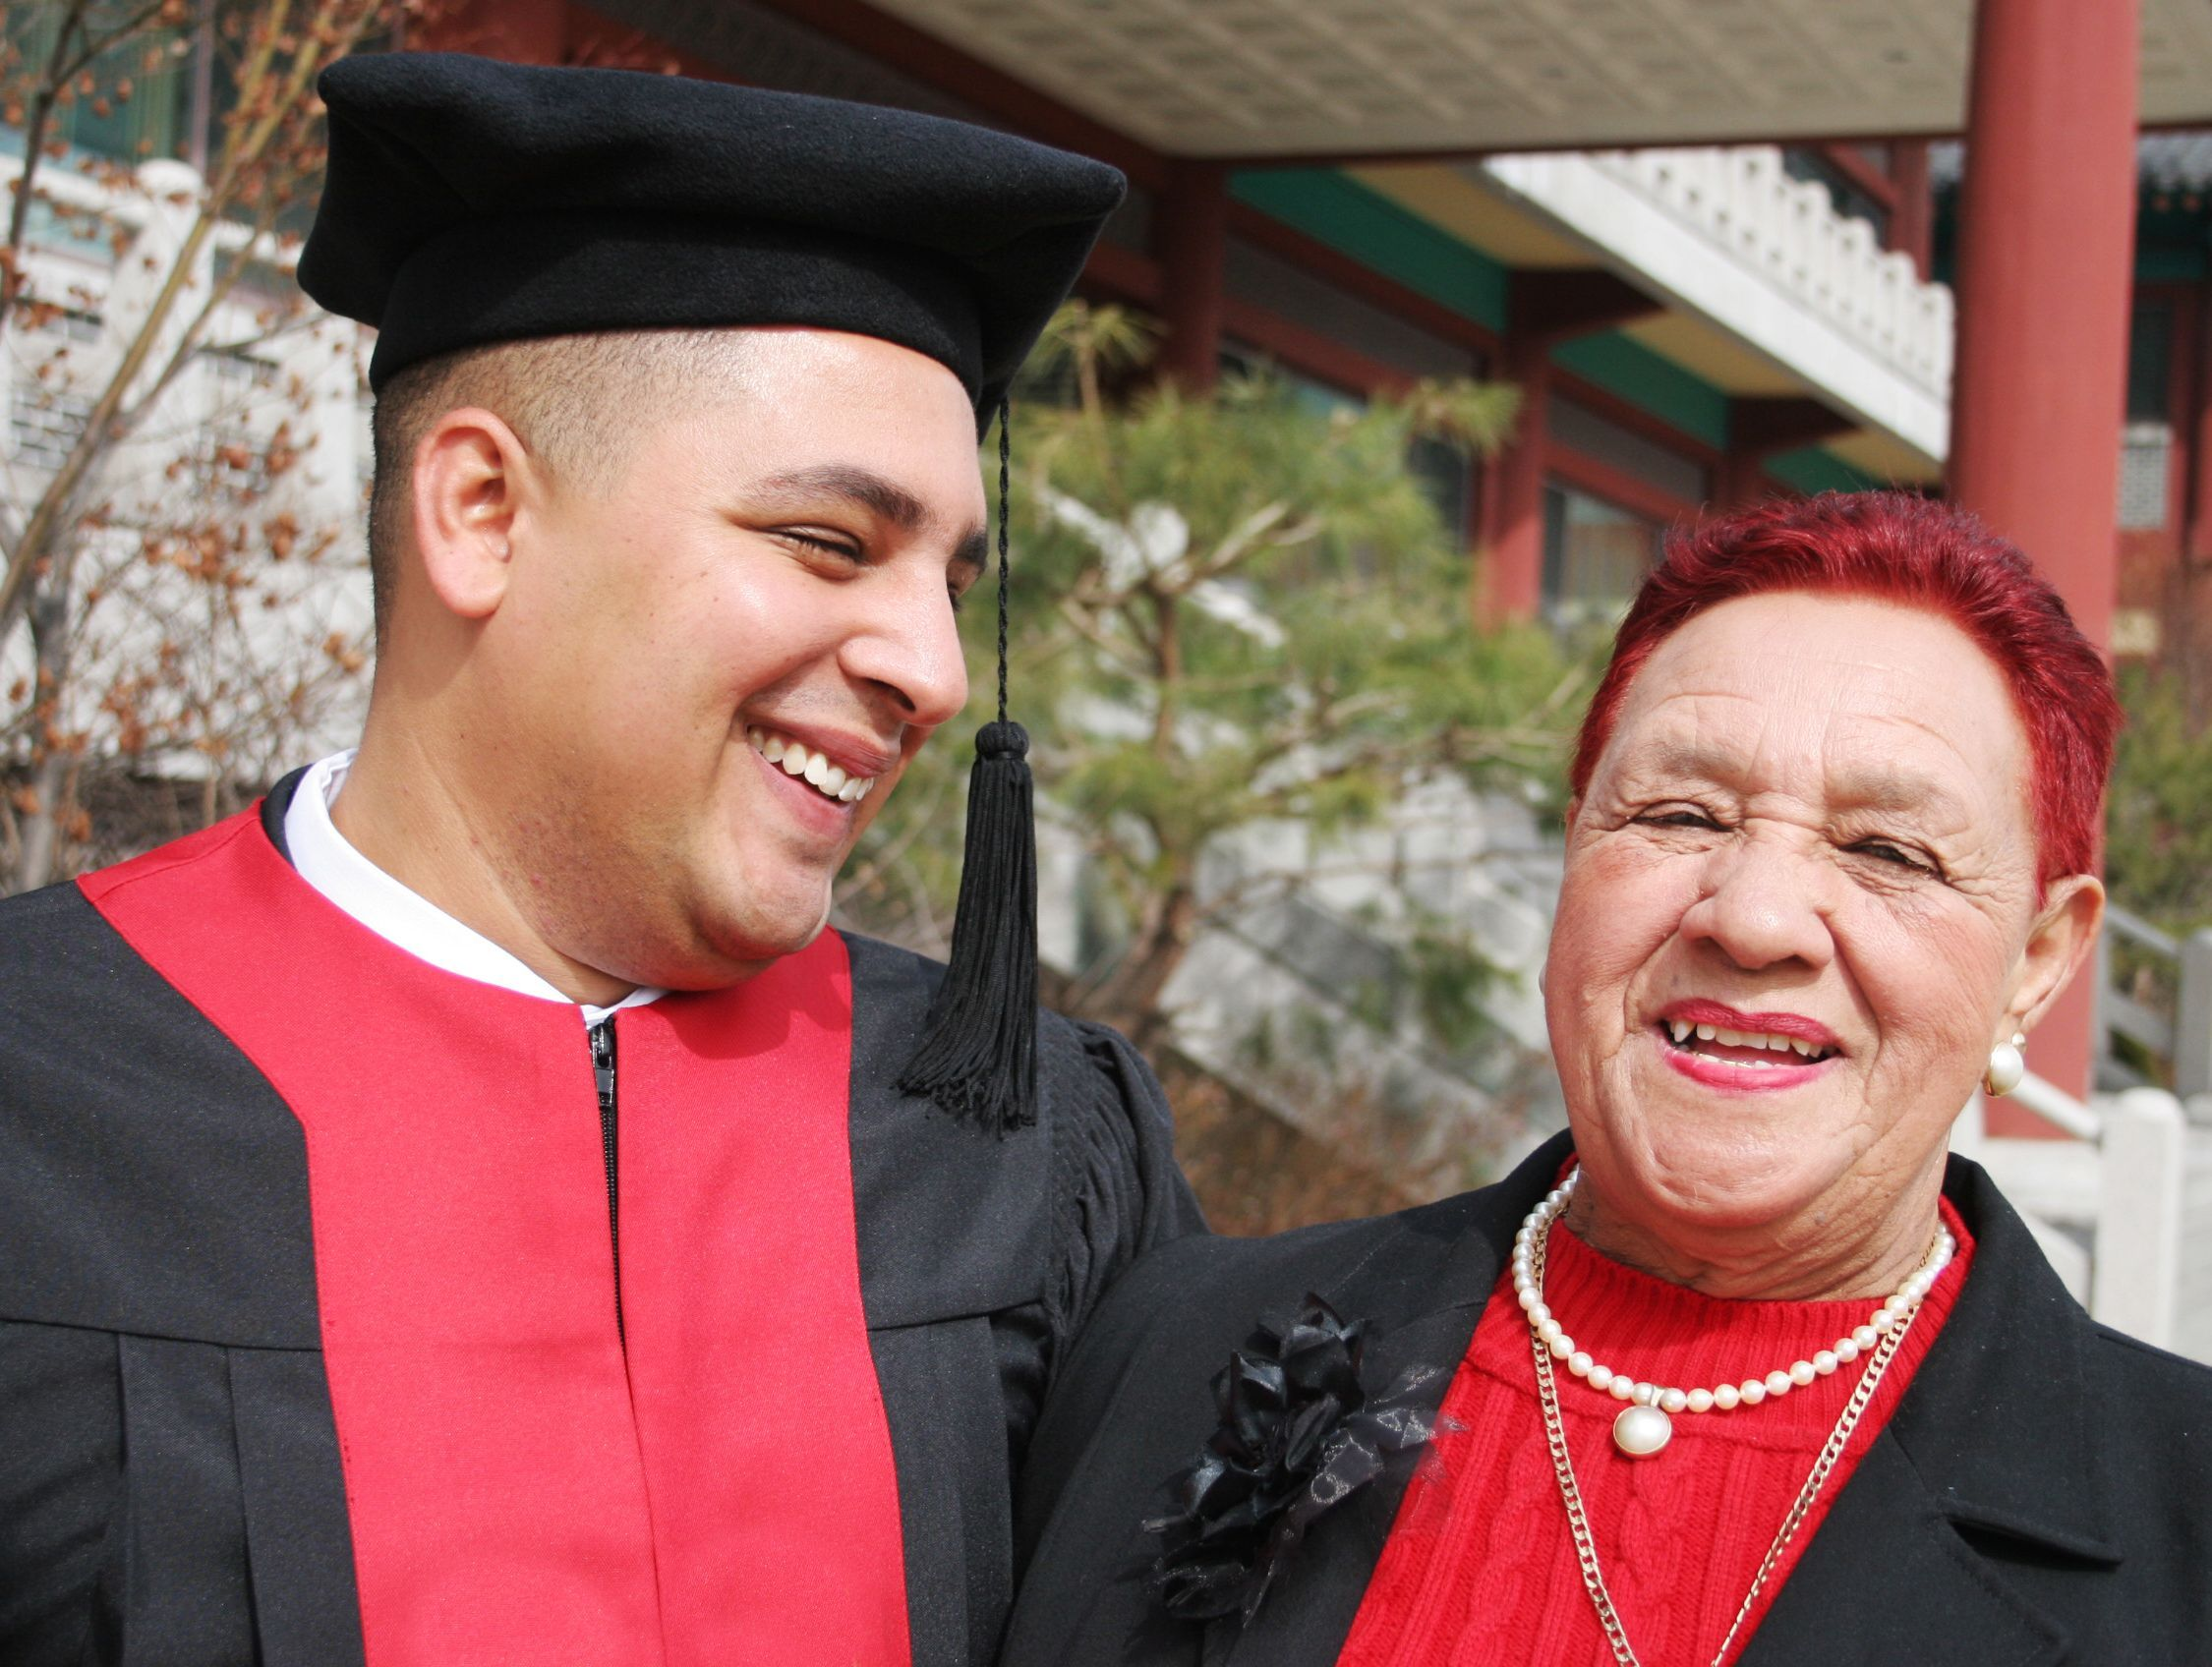 University graduate shares a moment with his grandmother - happy and successful